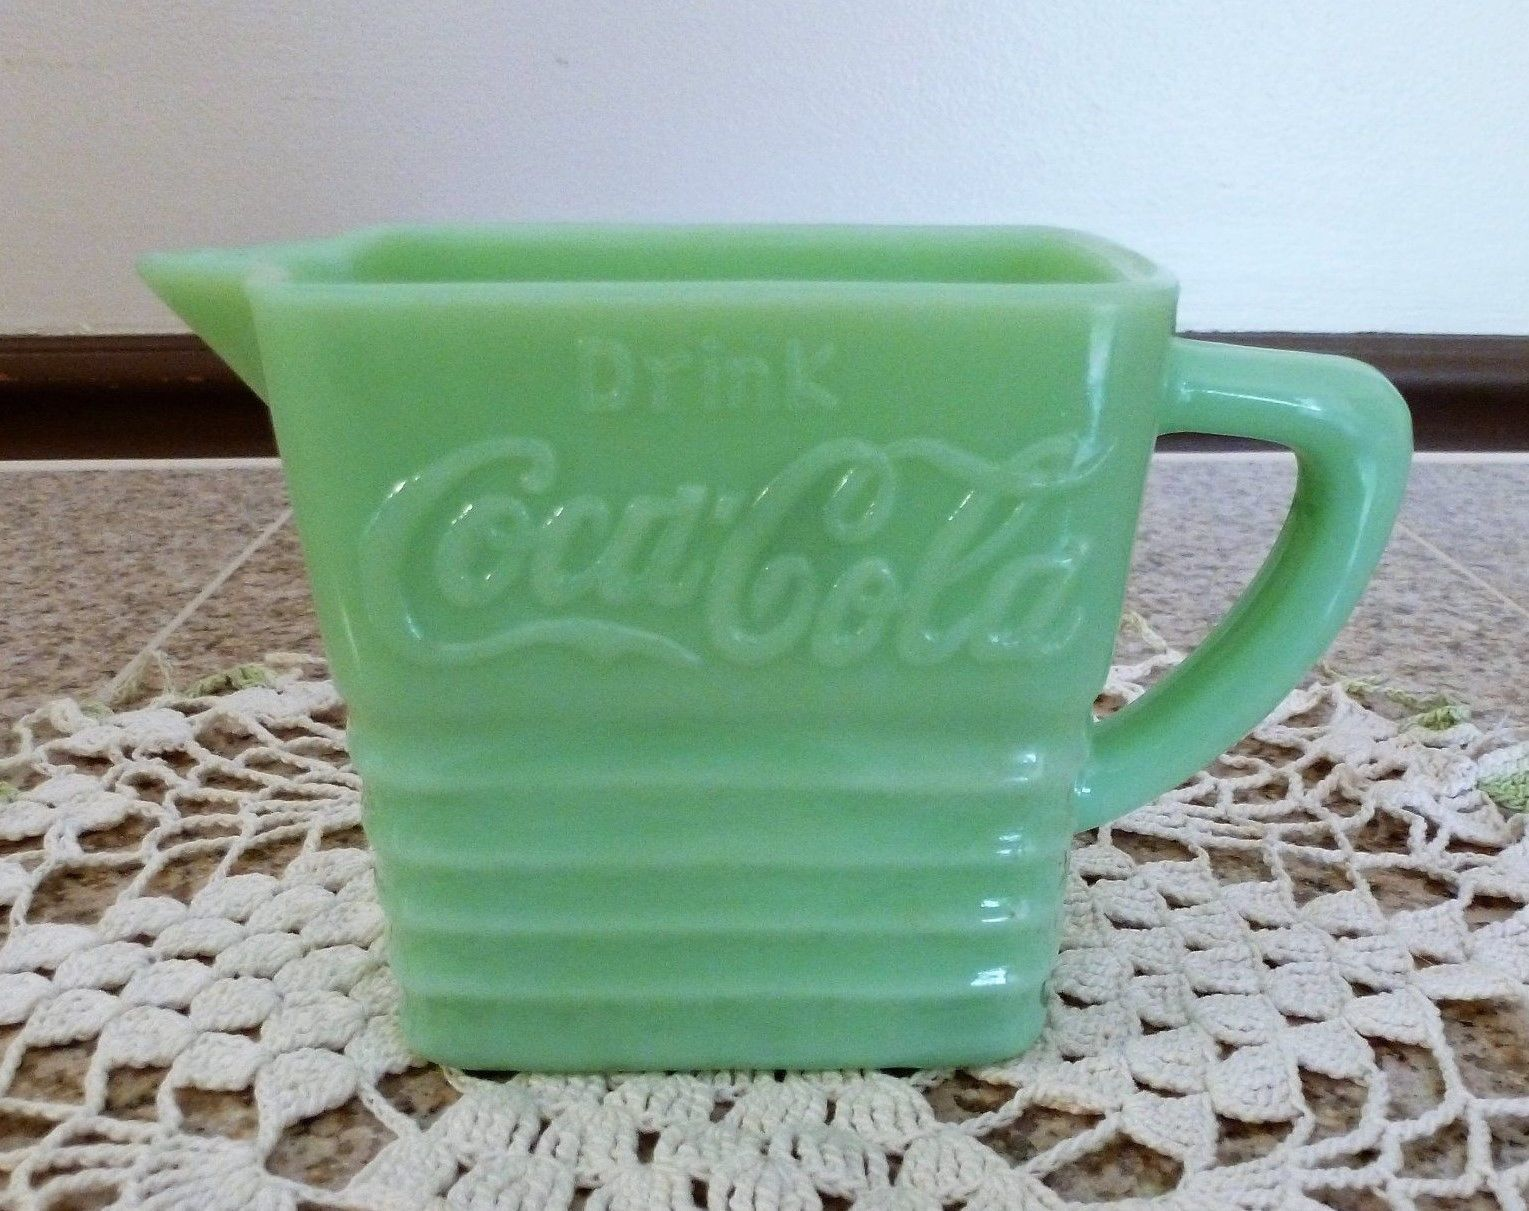 Double wall coffee cup likewise vintage pyrex clear glass refrigerator - Vintage Drink Coca Cola Jadeite Jadite Small Pitcher Creamer Hard To Find